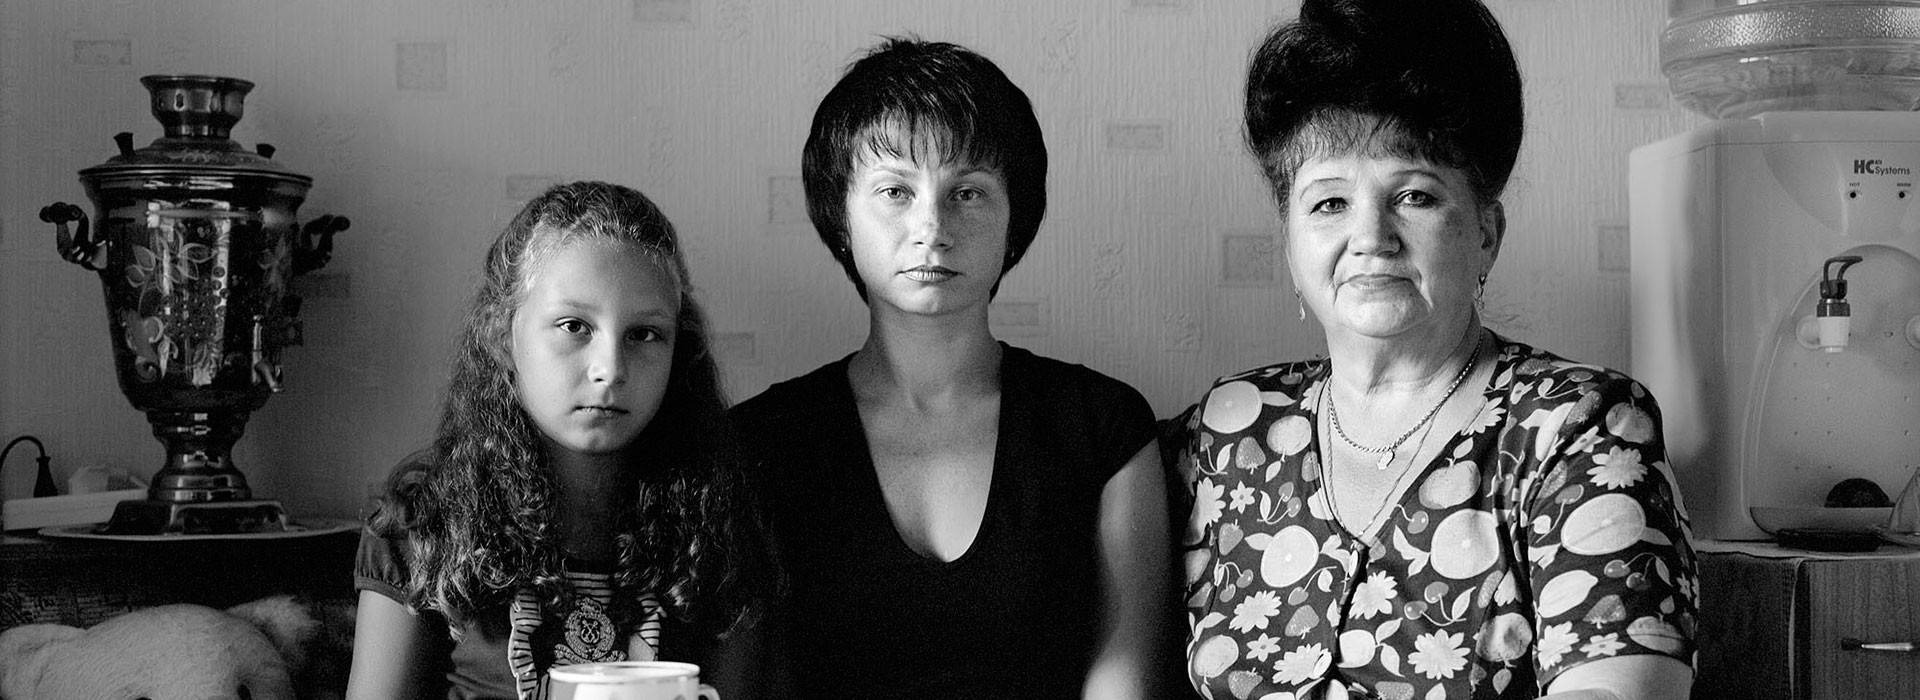 The lives of others: why eastern Europe's photographers are putting the family in focus